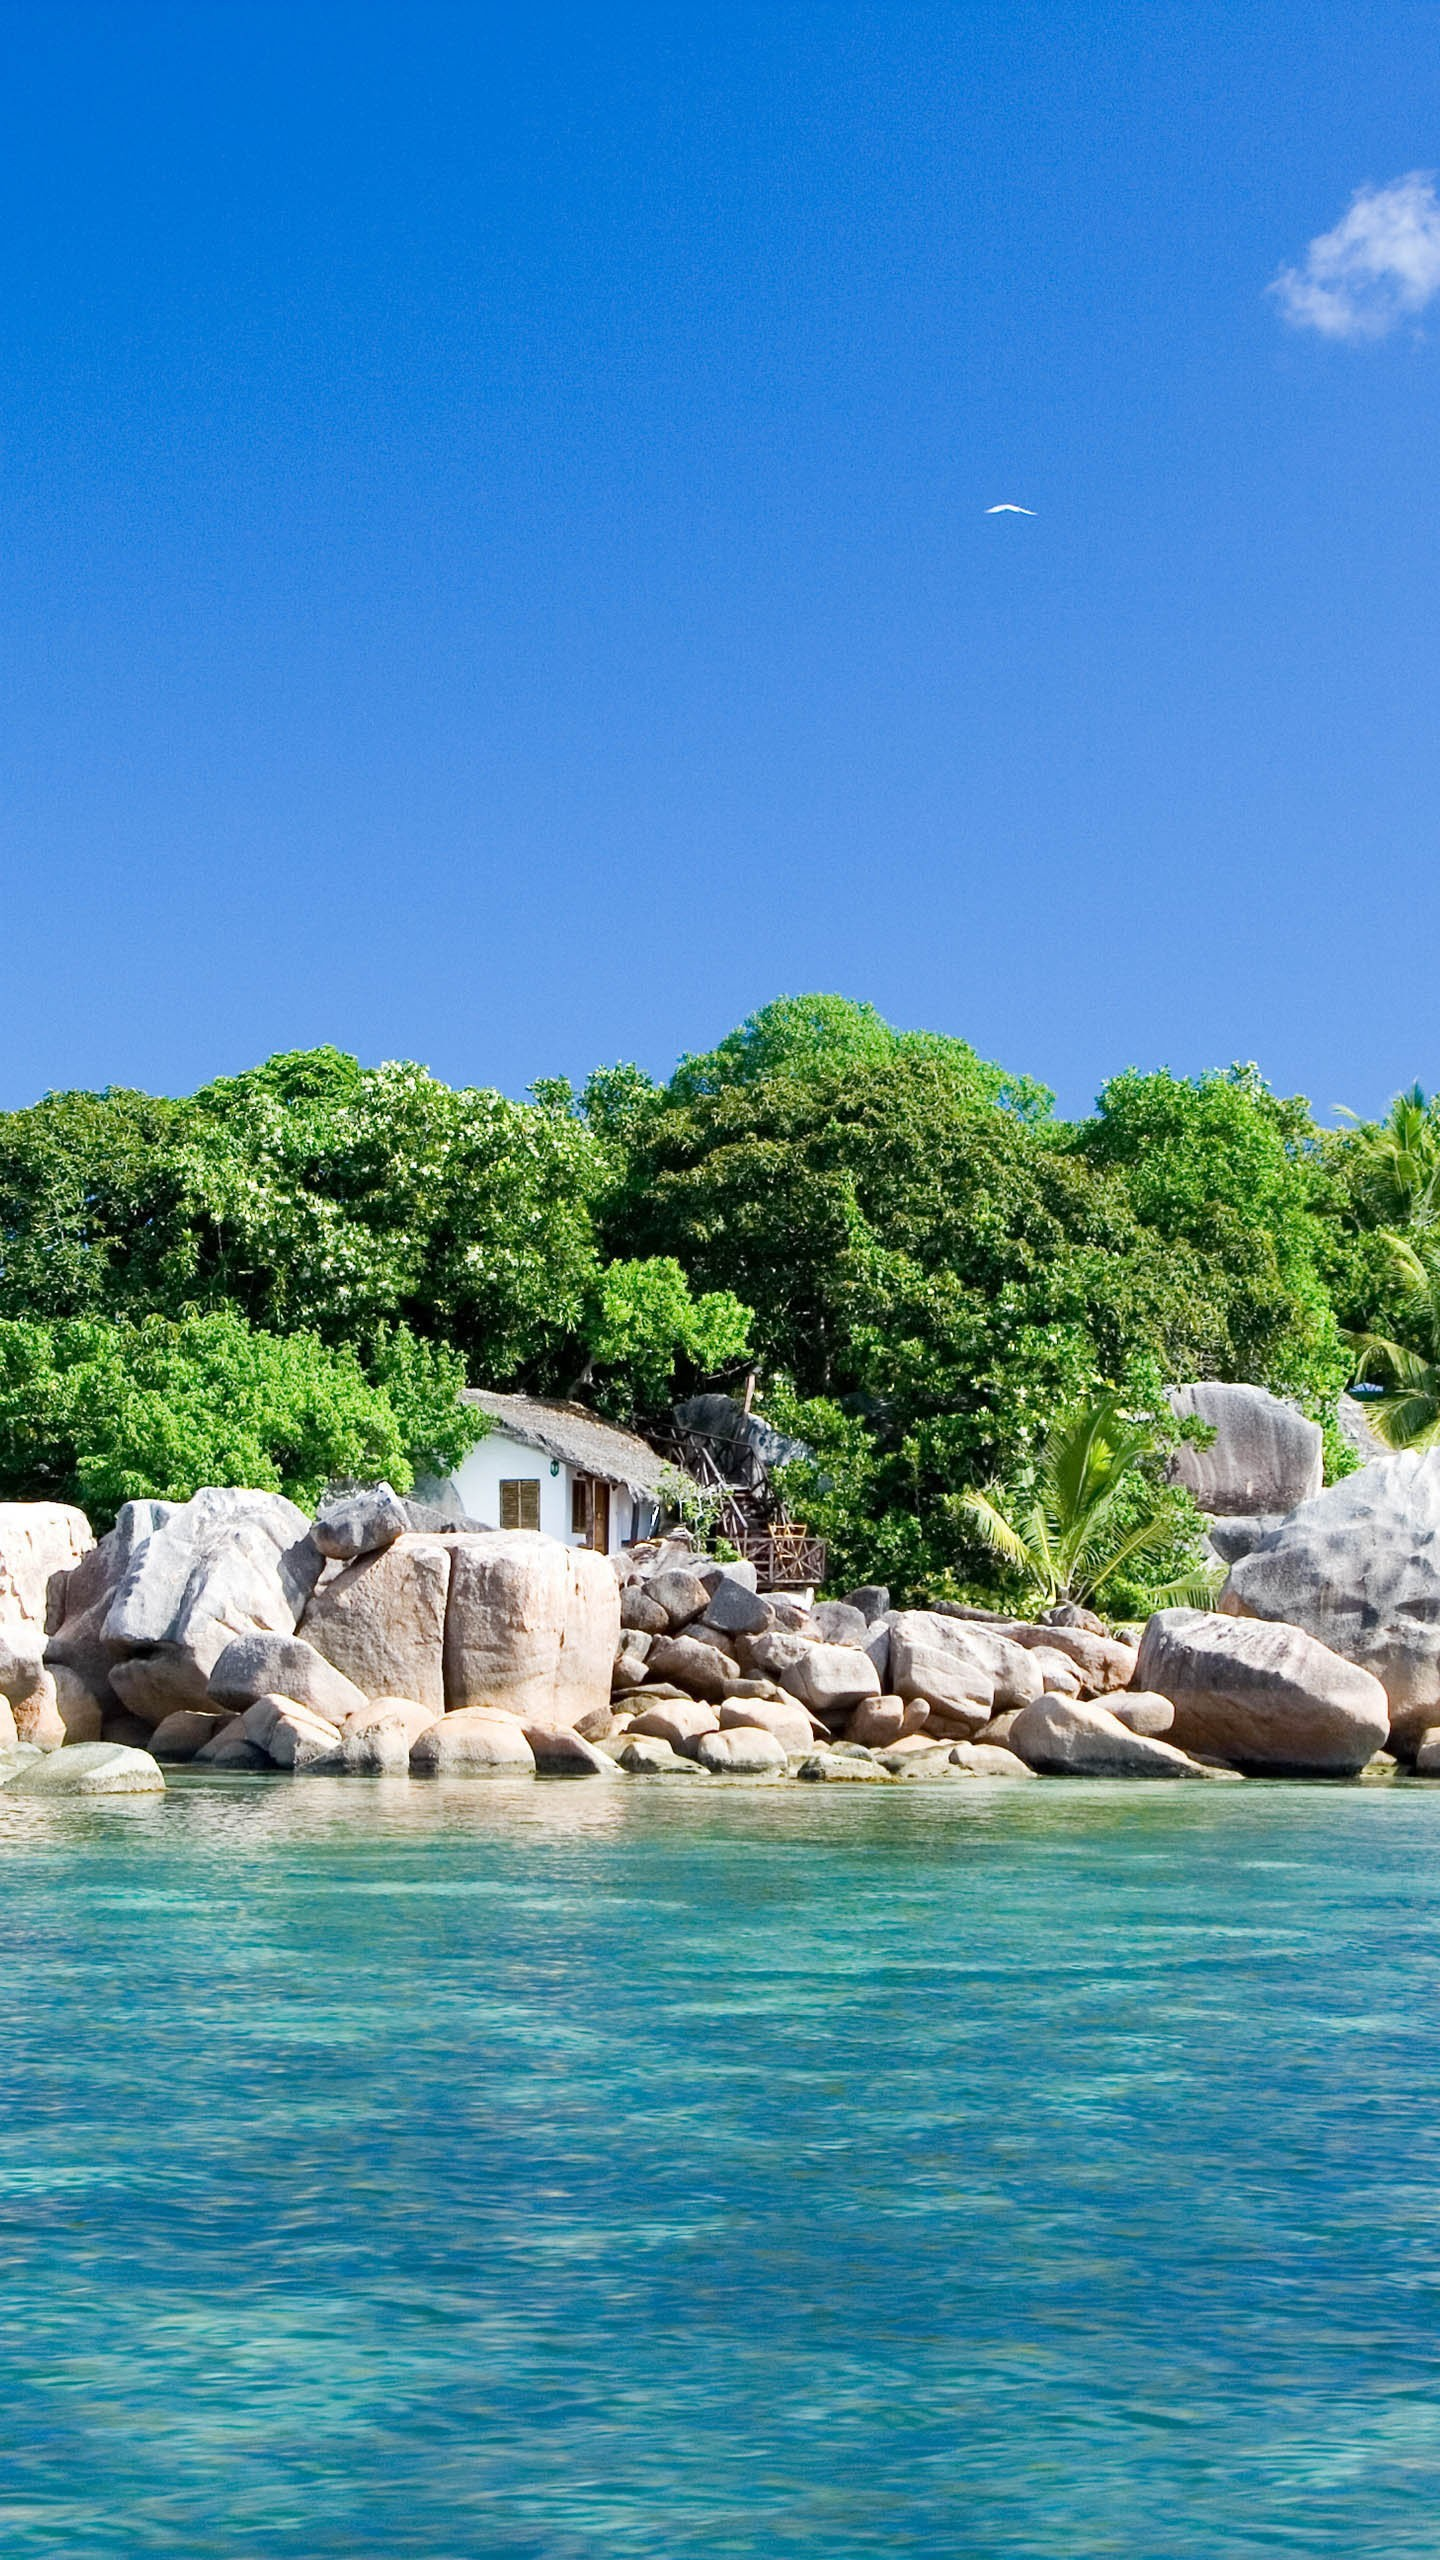 house at the beach in an island wallpaper background